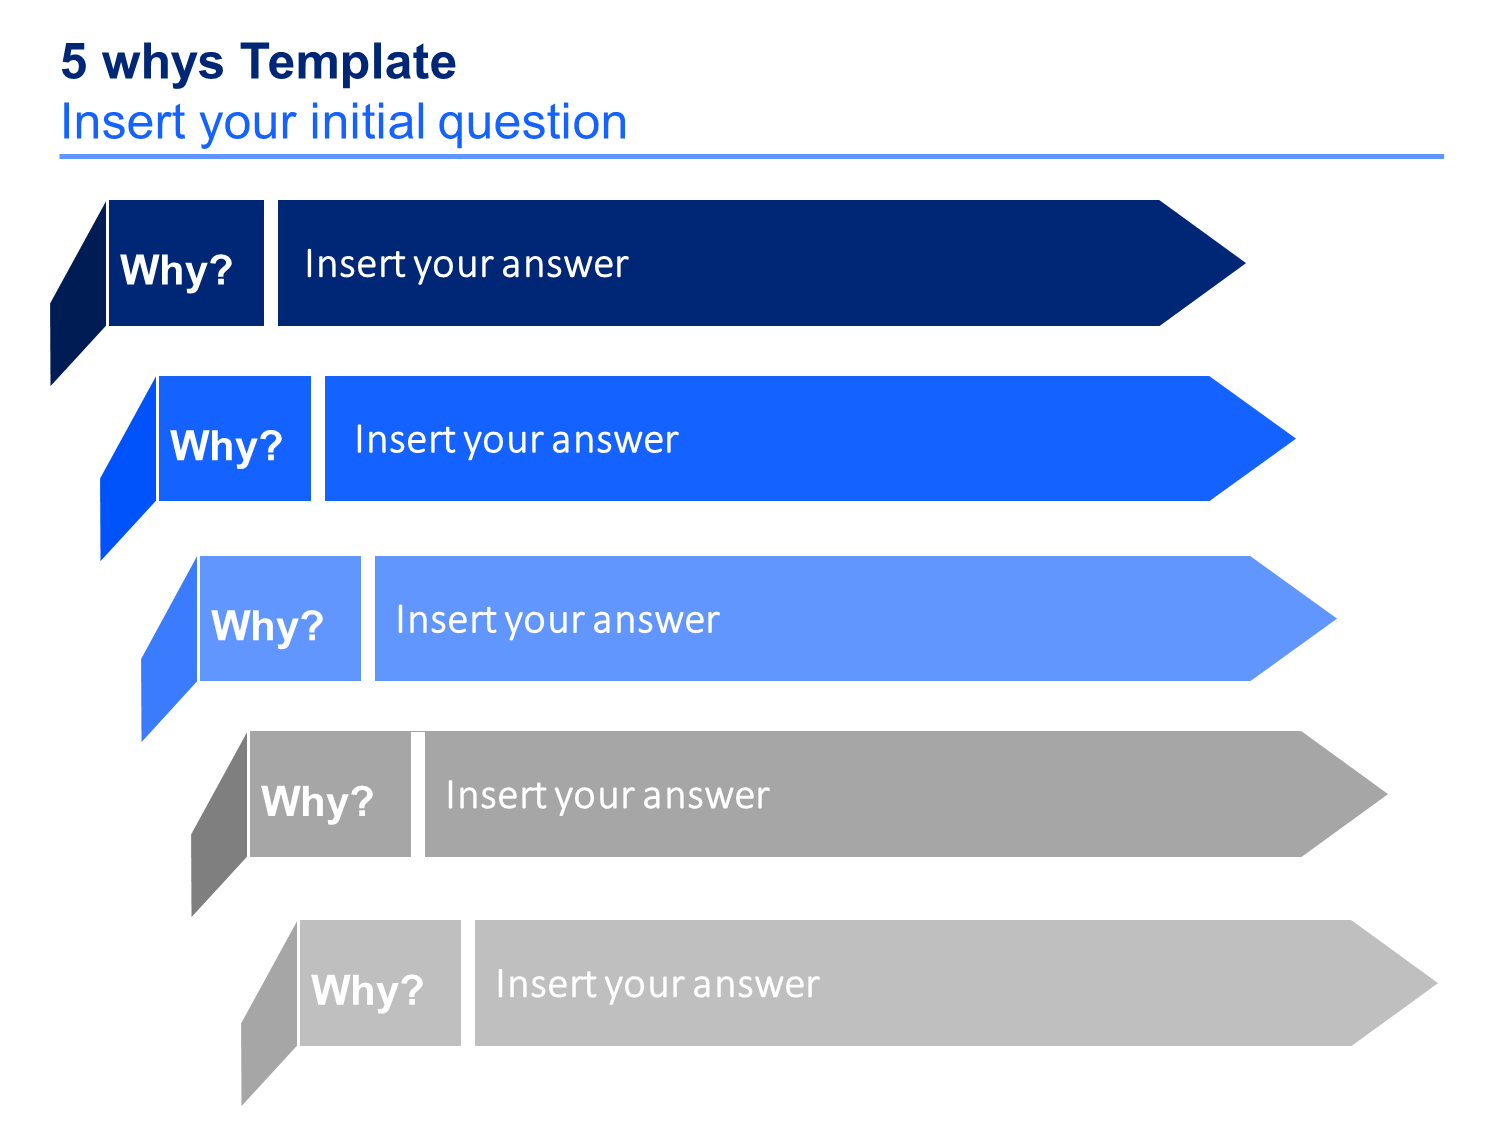 5 Whys Templates